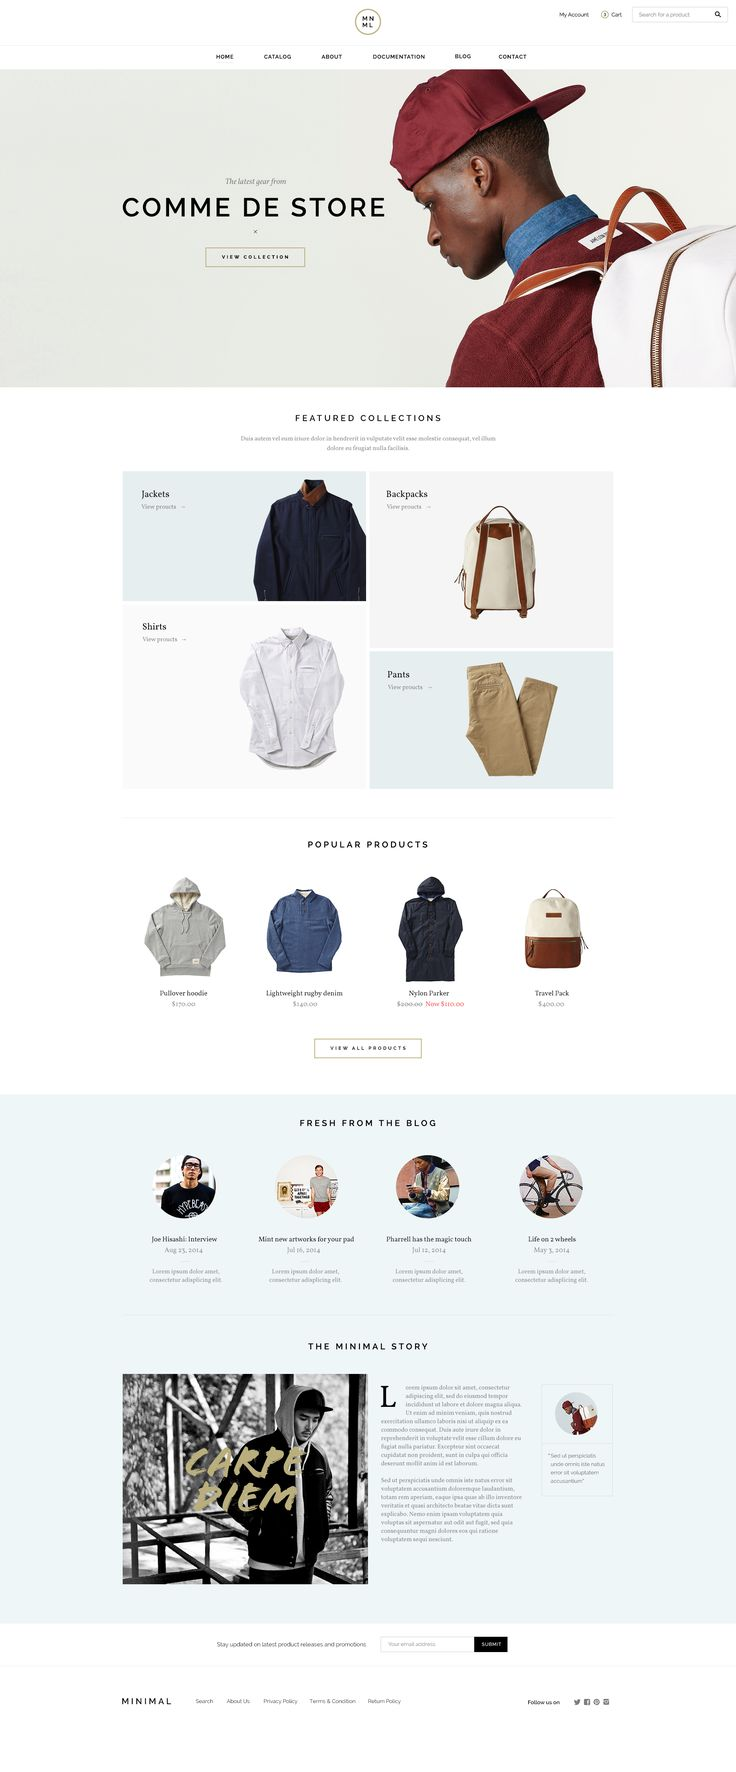 eCommerce web site concept by Nguyen Le. https://dribbble.com/shots/1812044-Shop/attachments/299714